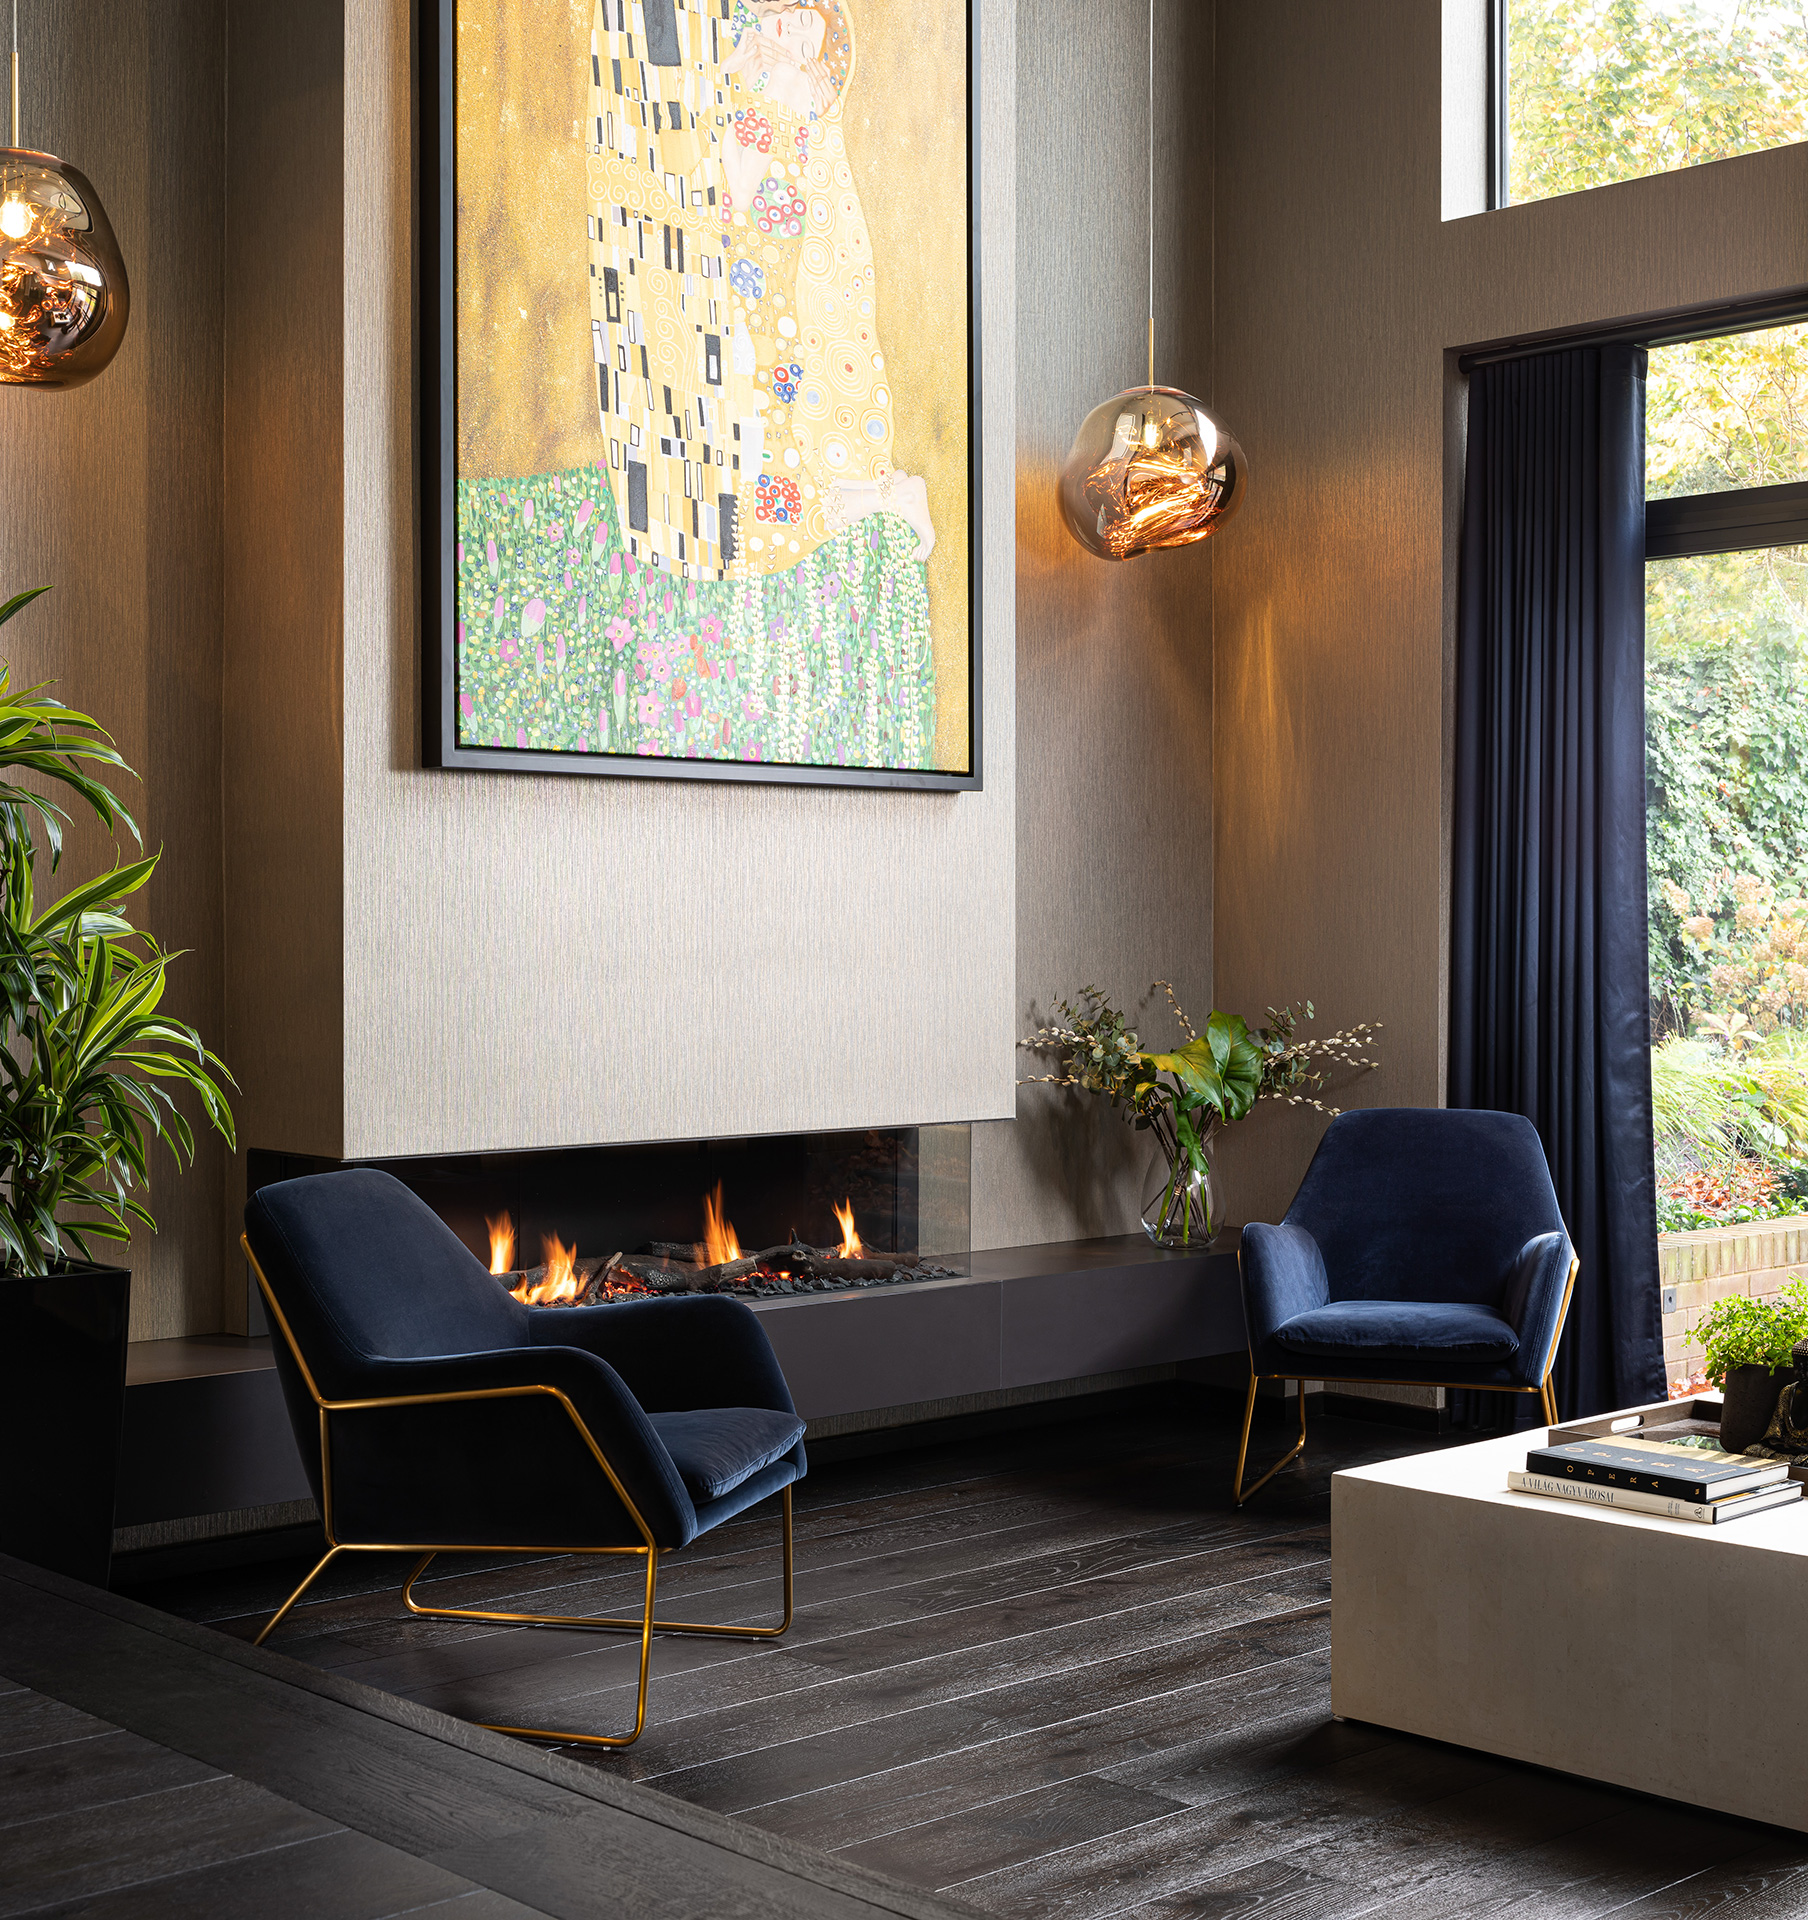 Angular deep blue chairs on dark wood floor in front of modern fireplace